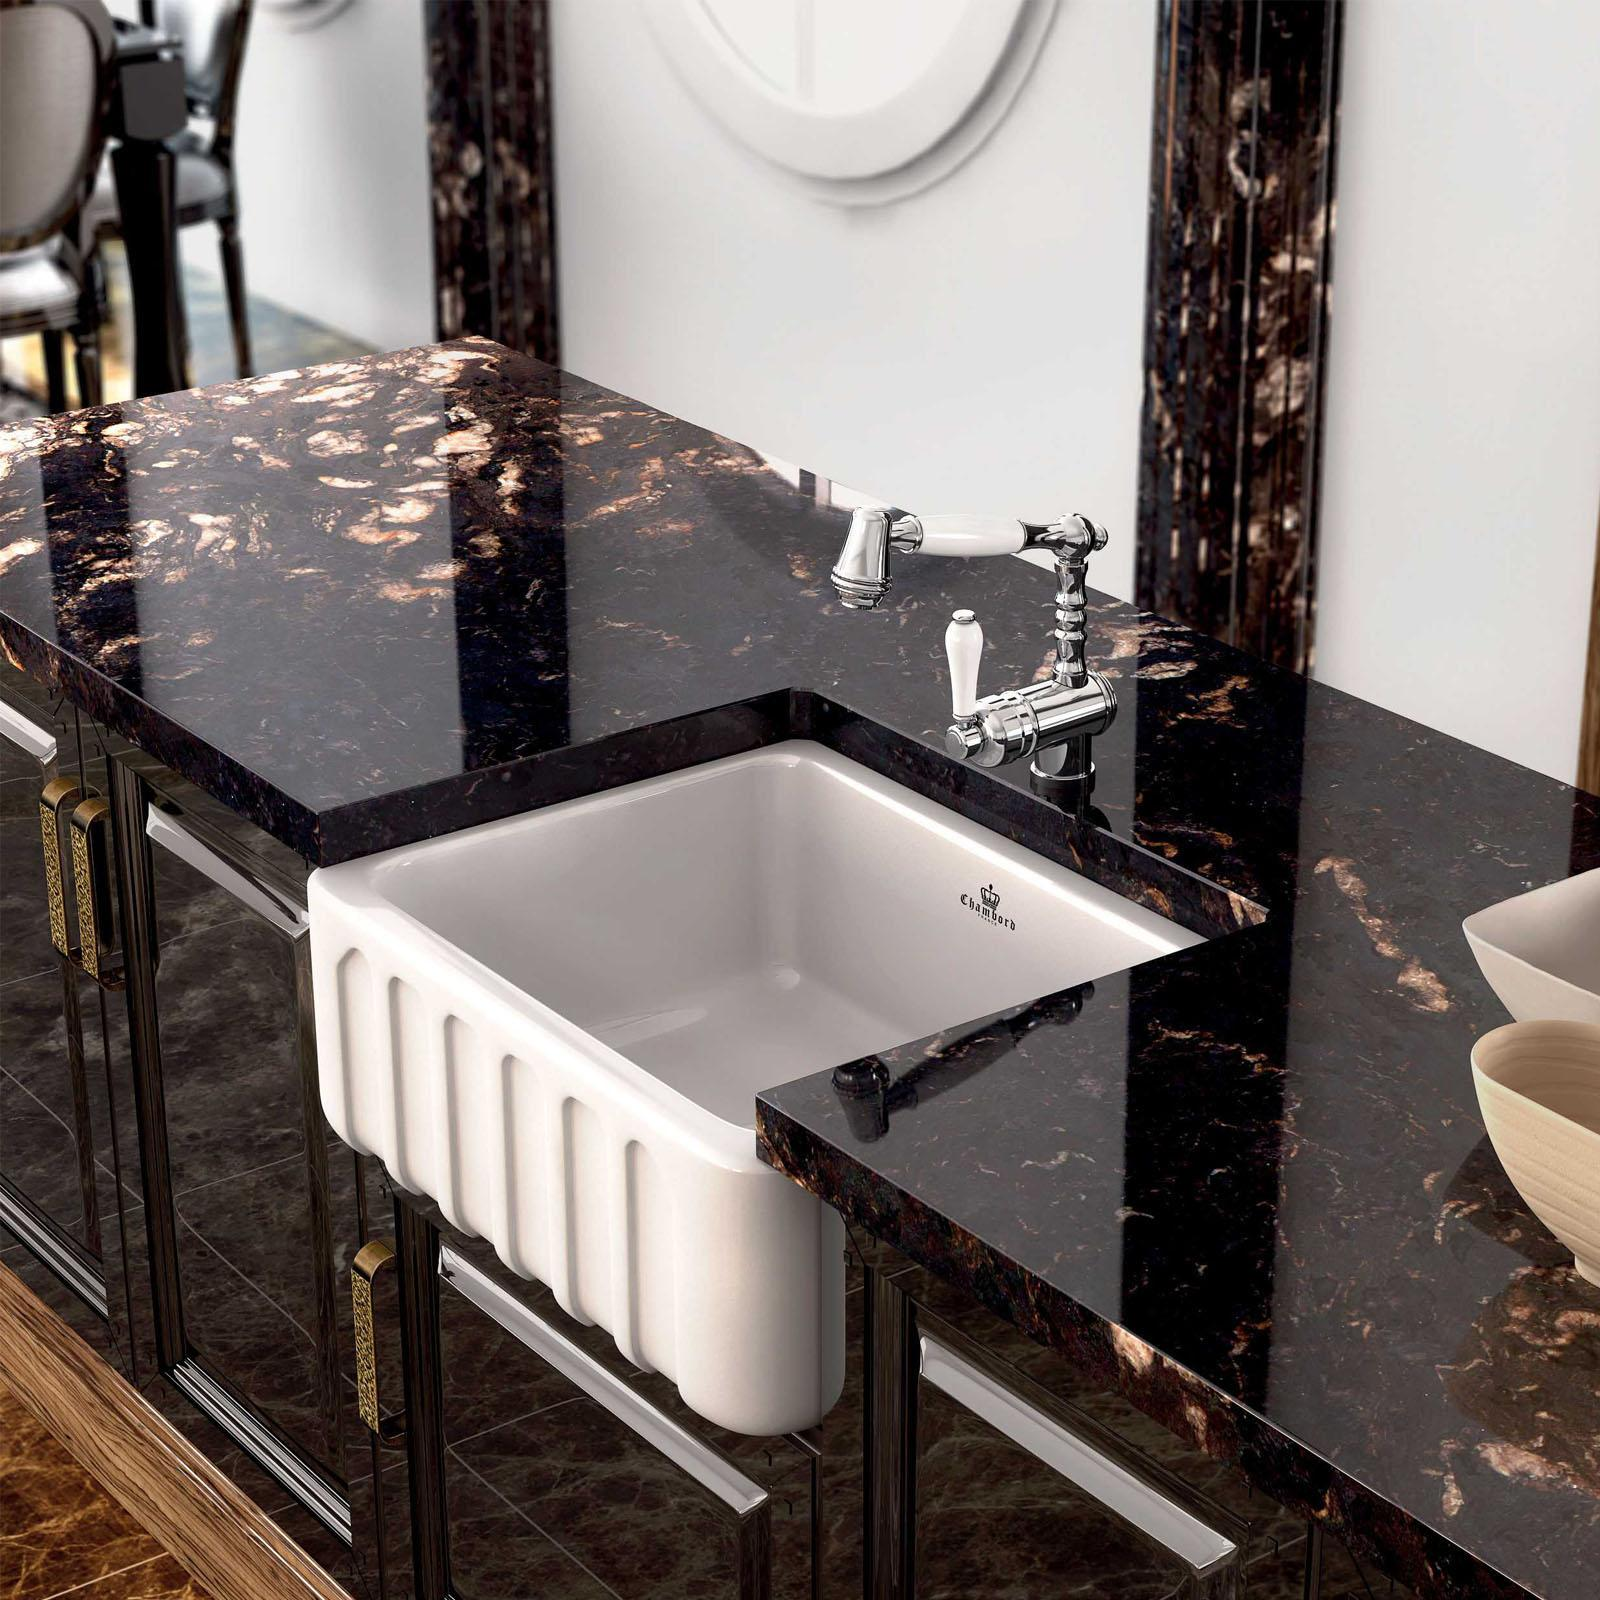 High-quality sink Louis I - single bowl, ceramic - ambience 2